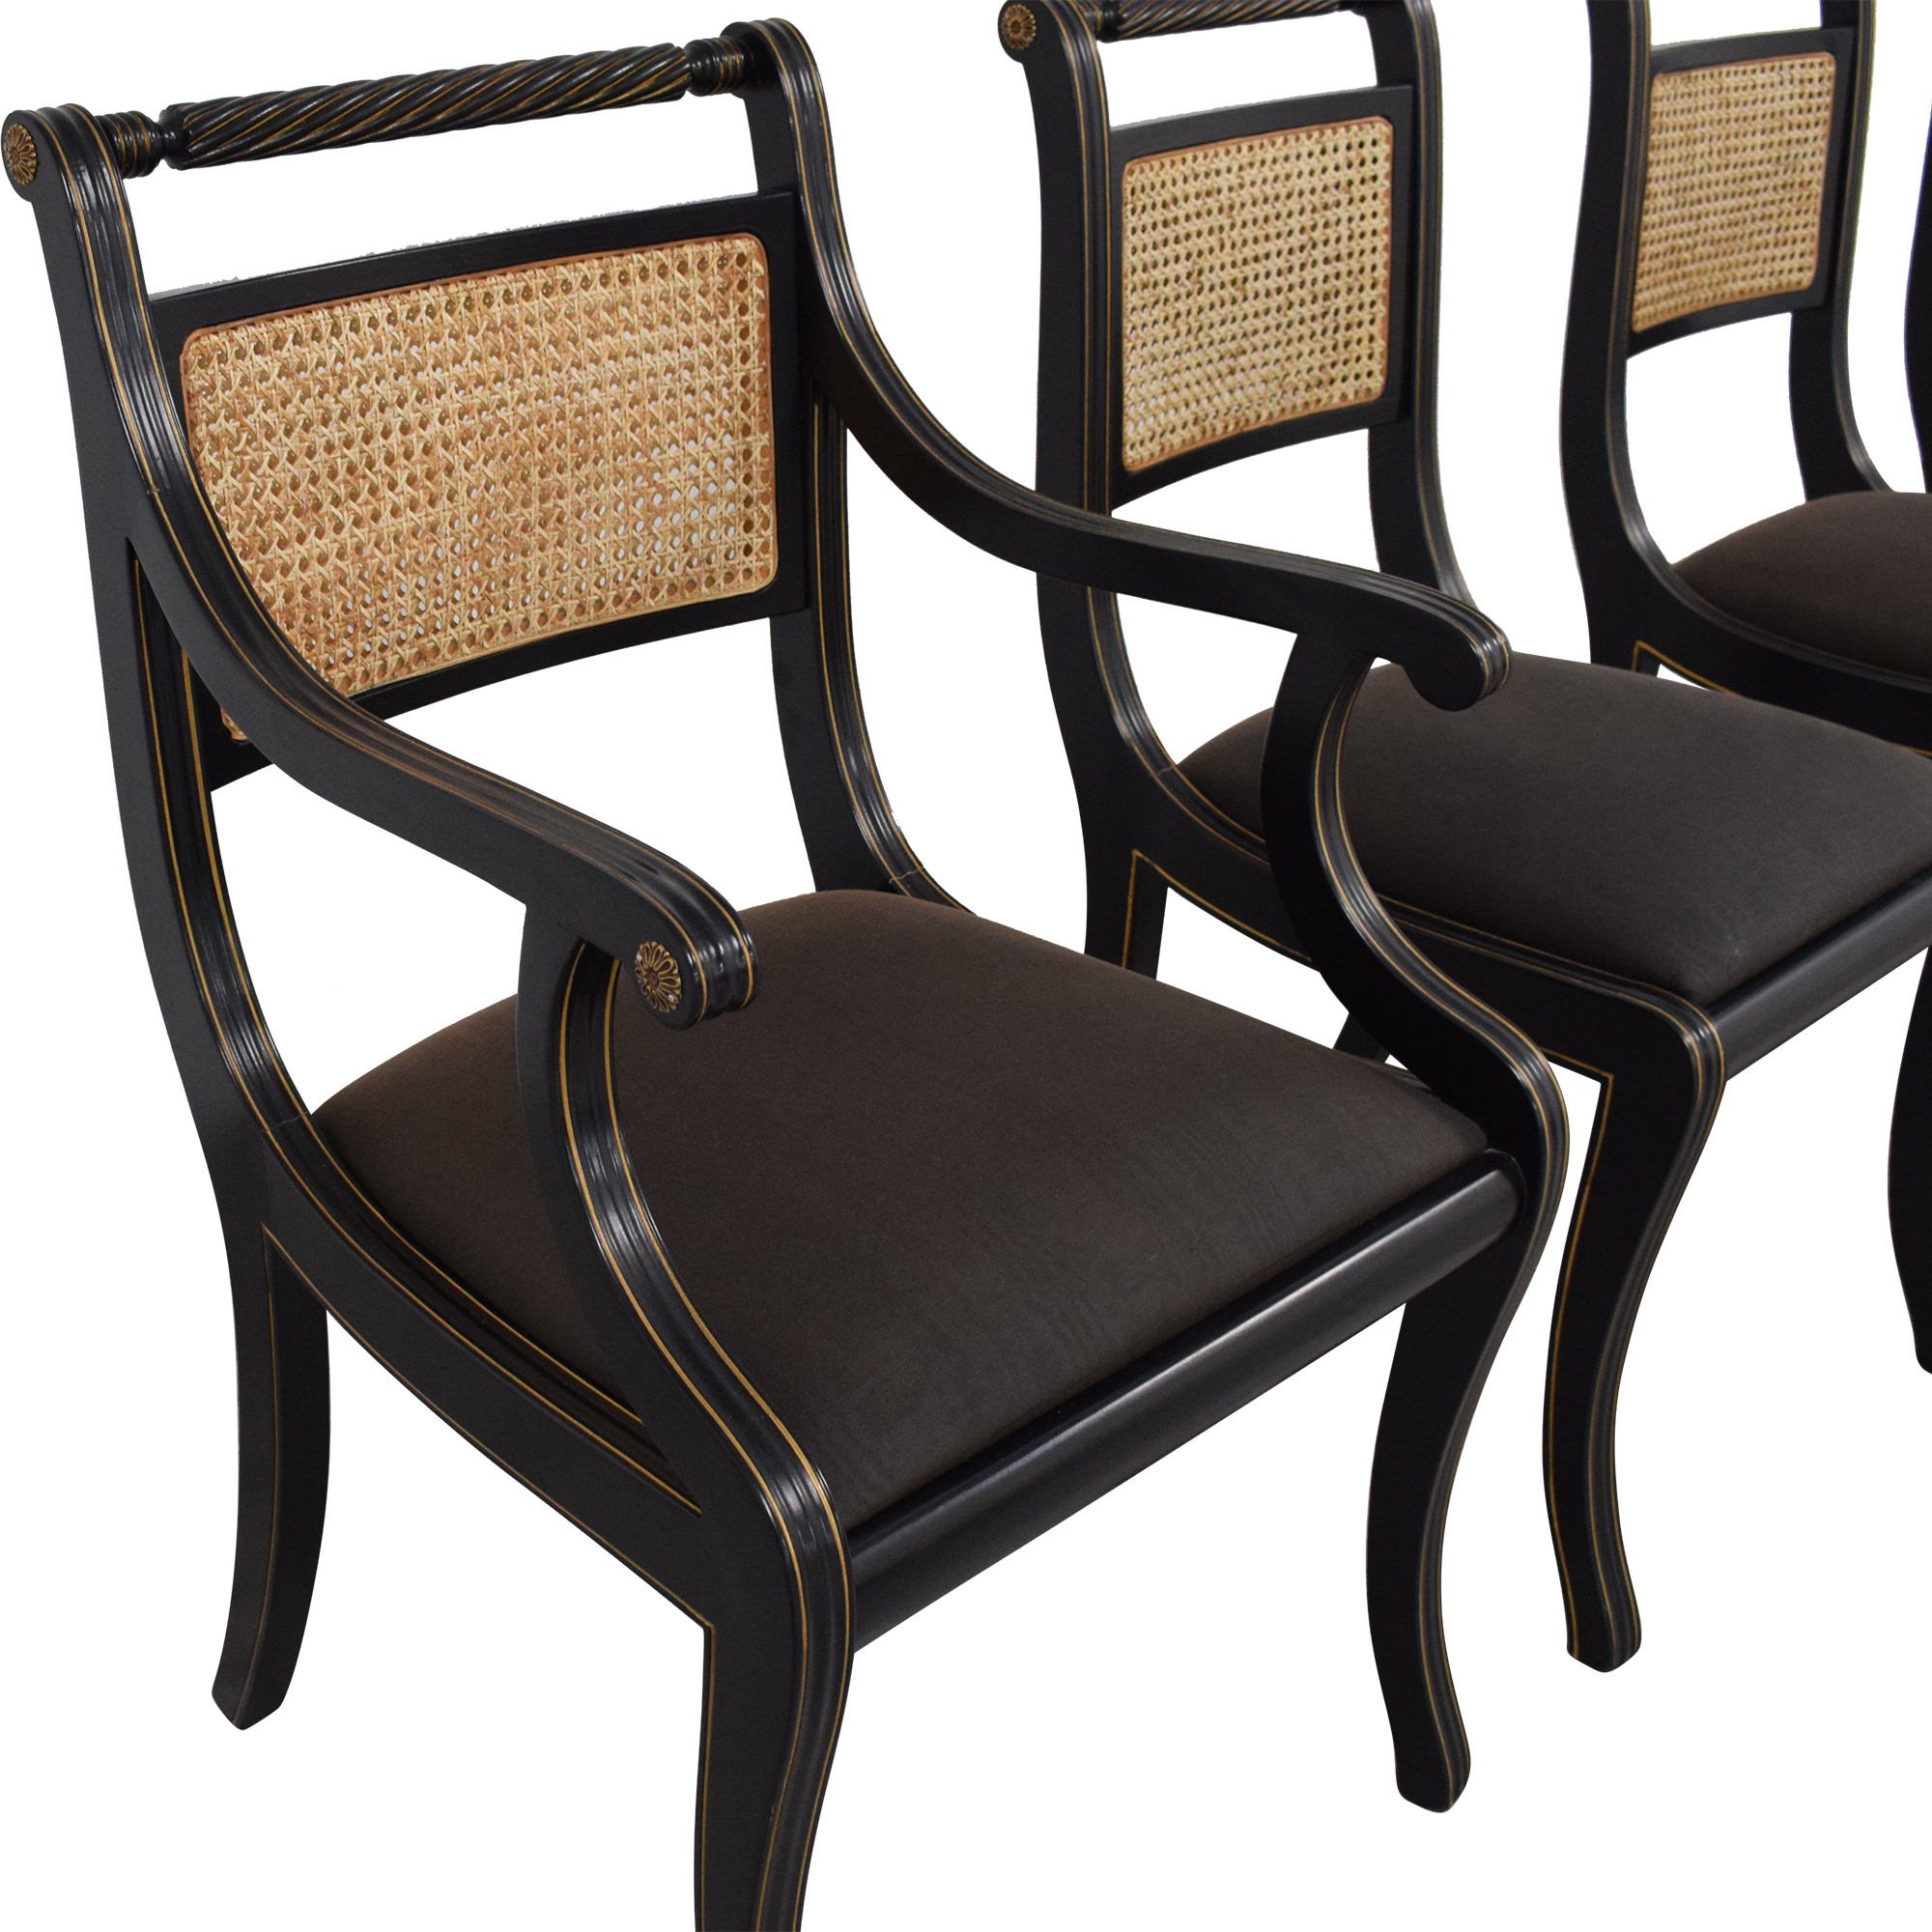 Bloomingdale's Bloomingdale's Italian Cane Back Dining Chairs black and tan